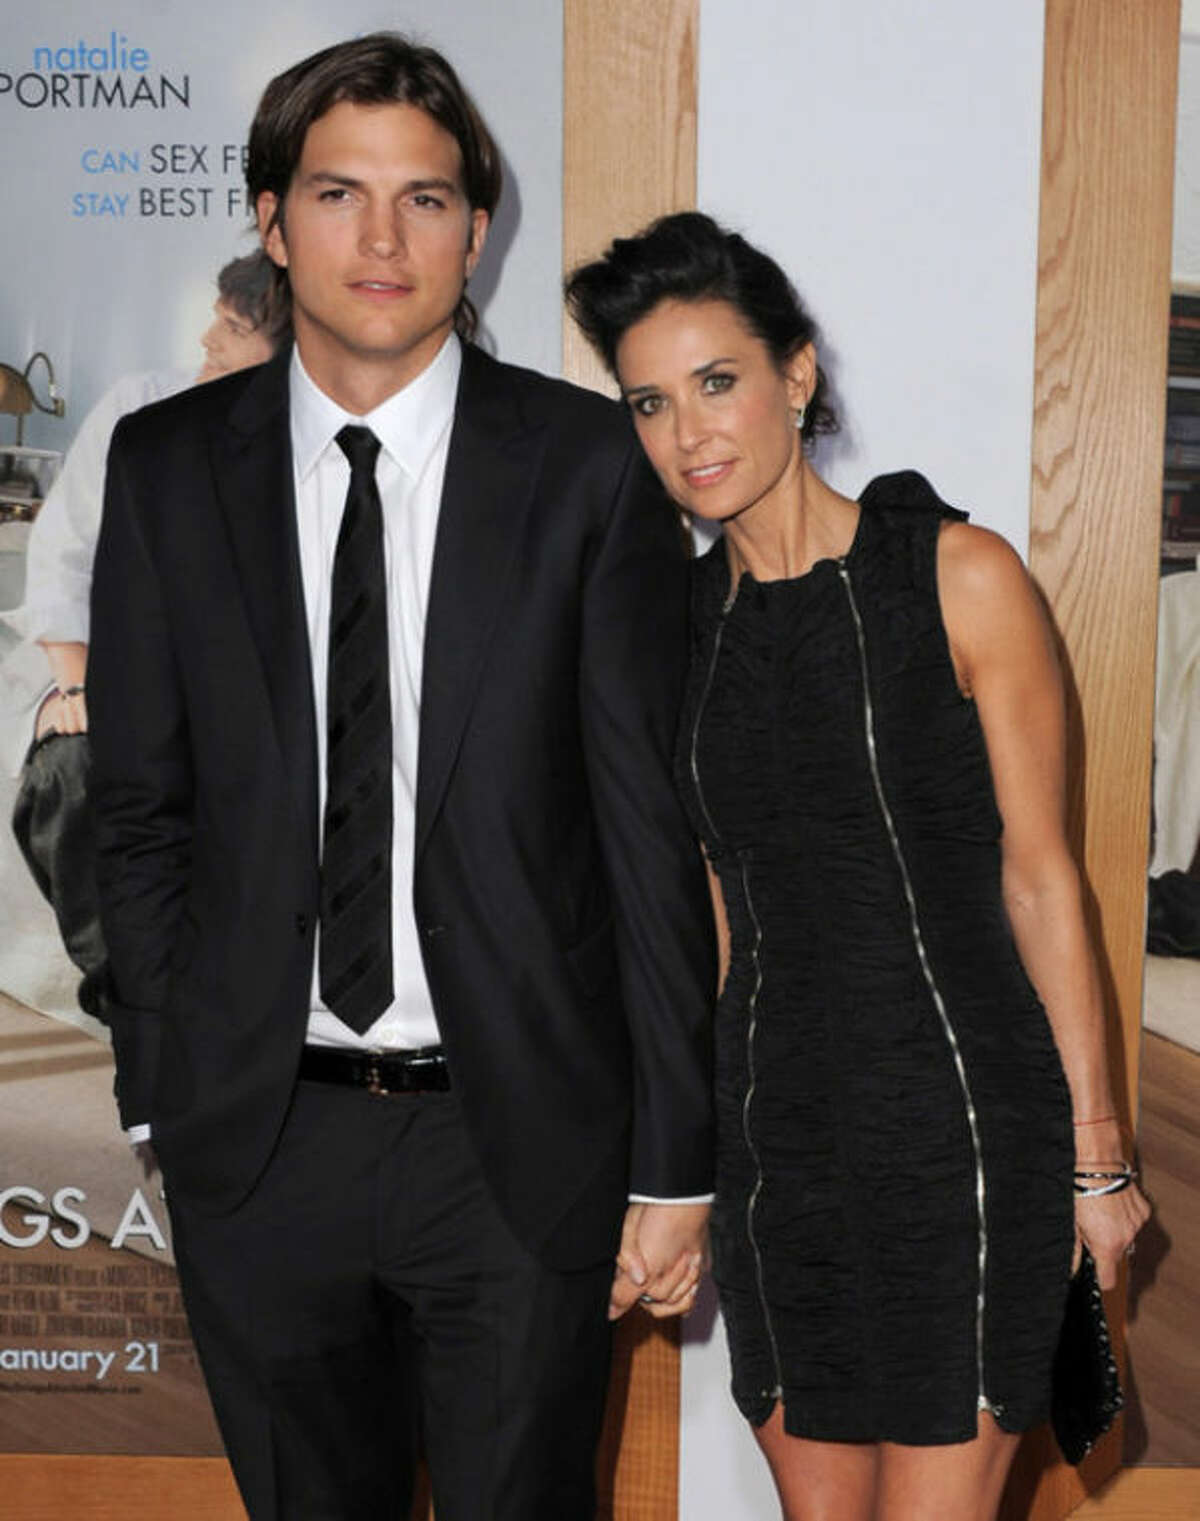 """FILE - In this Jan. 11, 2011 file photo, actor Ashton Kutcher, left, and actress Demi Moore arrive at the """"No Strings Attached"""" Los Angeles Premiere at Regency Village Theatre in Westwood, Calif. Moore is seeking spousal support from Kutcher, according to divorce paperwork filed Thursday March 7, 2013, in Los Angeles. The couple split in 2011 after more than six years of marriage. (Photo by Jordan Strauss/Invision/AP Images, File)"""